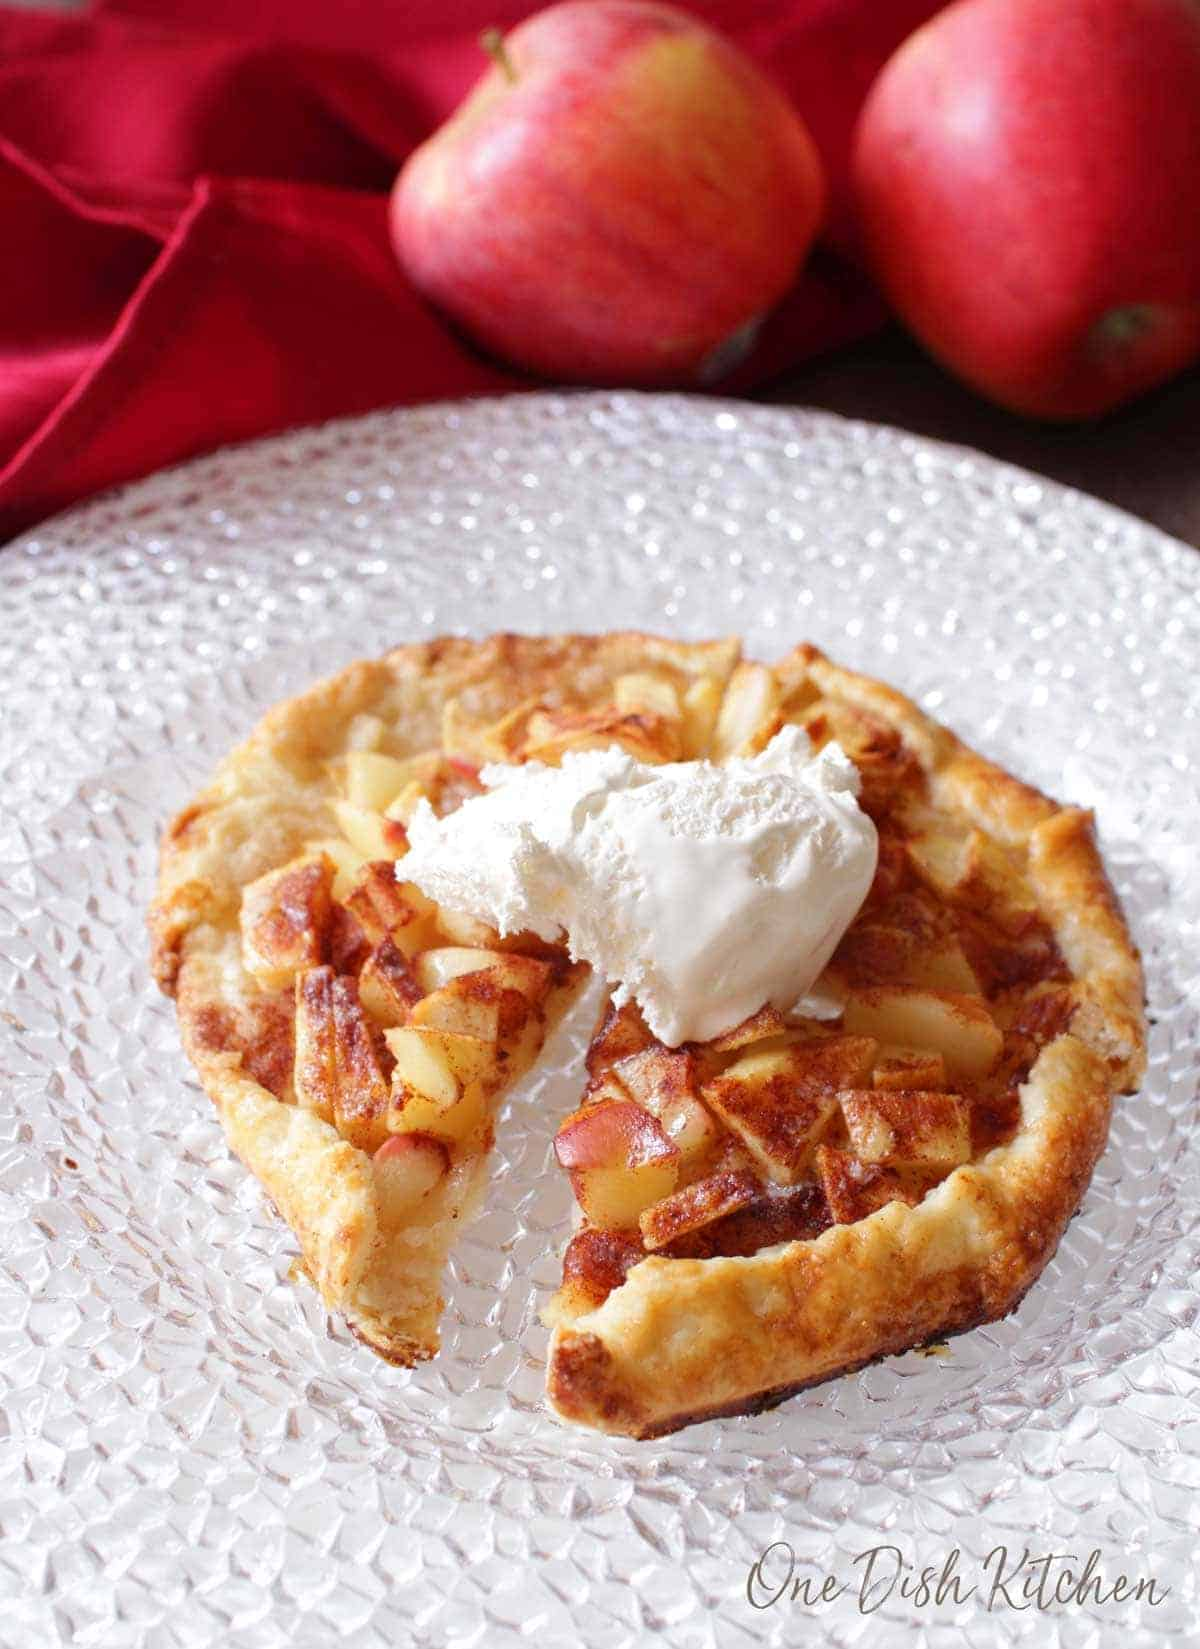 An apple galette topped with whipped cream cut into four slices